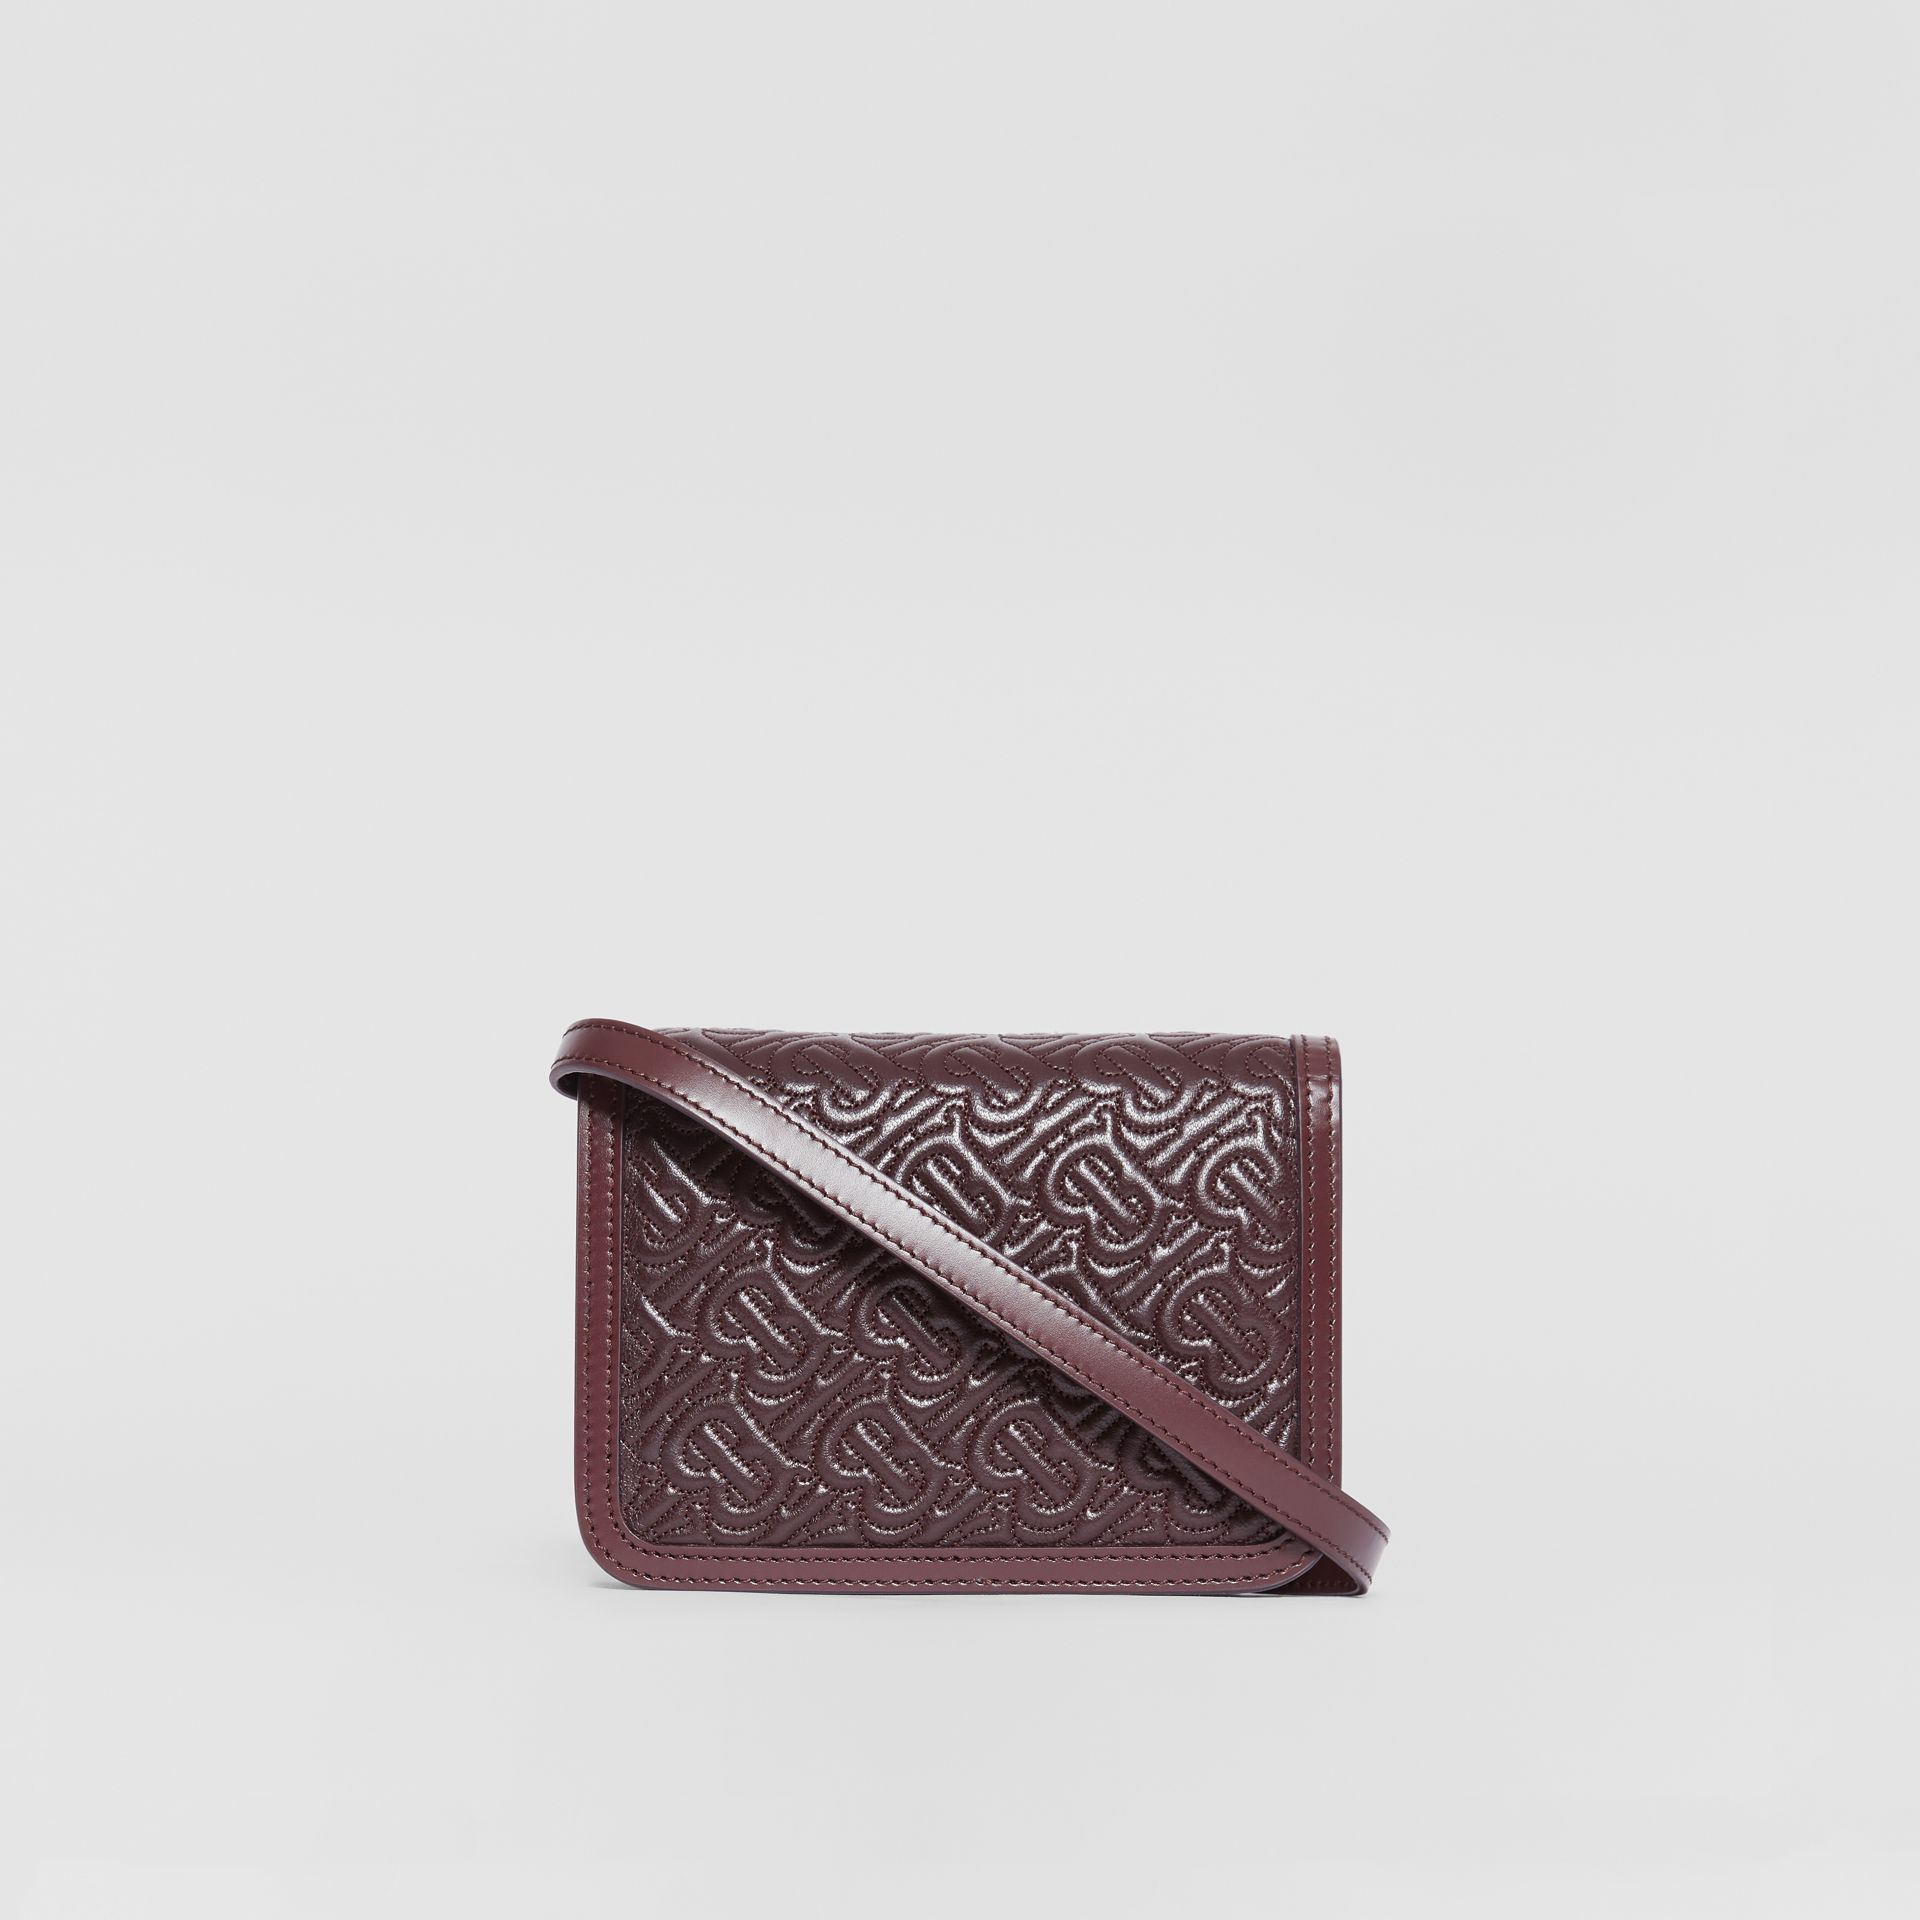 Mini Quilted Monogram Lambskin TB Bag in Dark Burgundy - Women | Burberry - gallery image 7